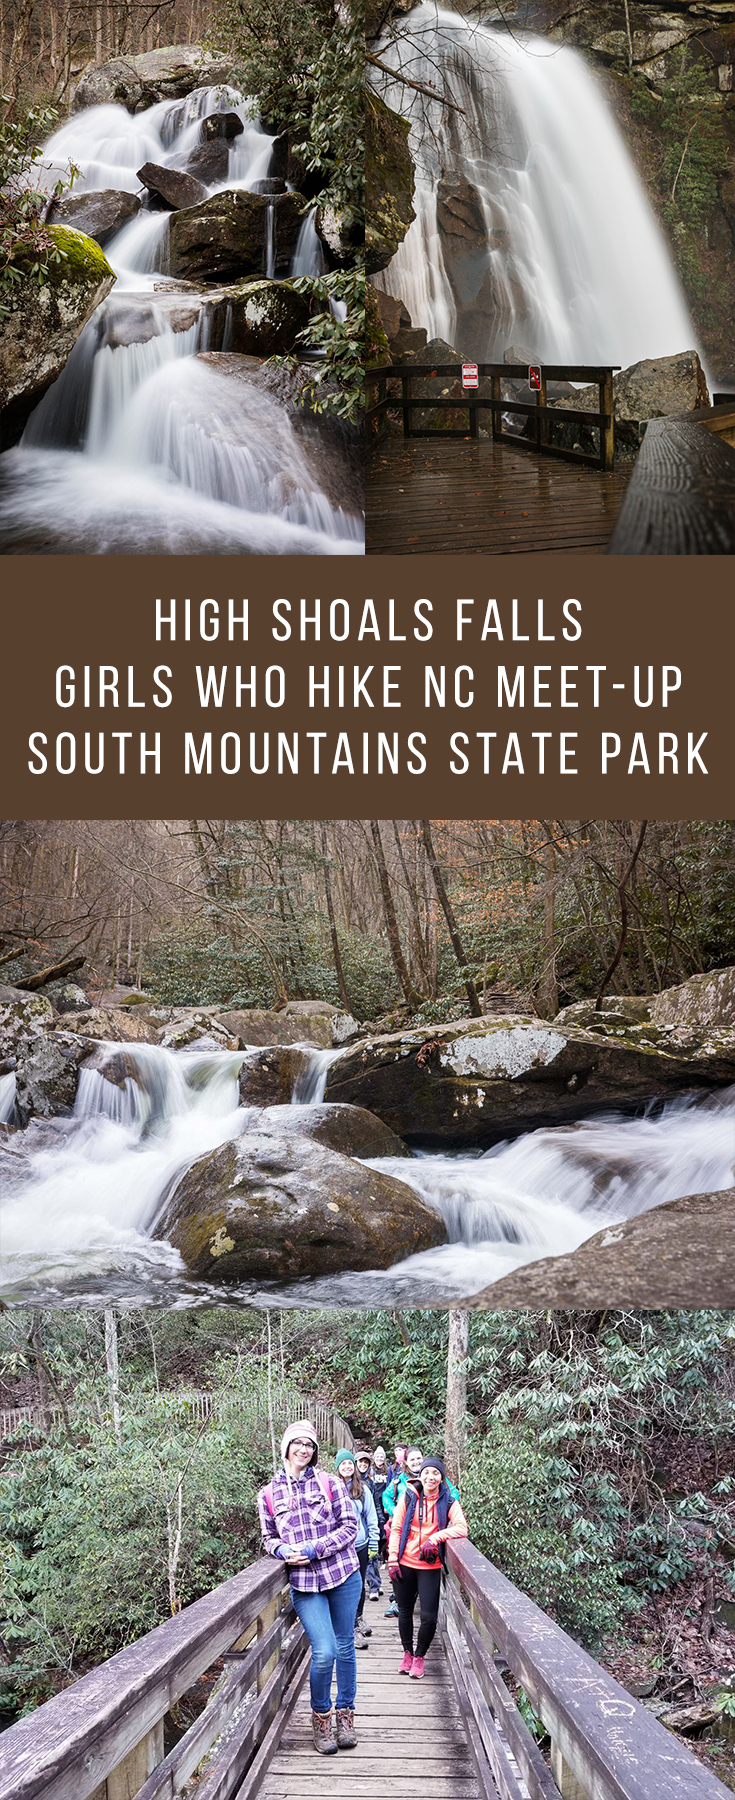 High Shoals Falls trail in South Mountains State Park, NC is a beautifully scenic trail with a 60-foot waterfall!